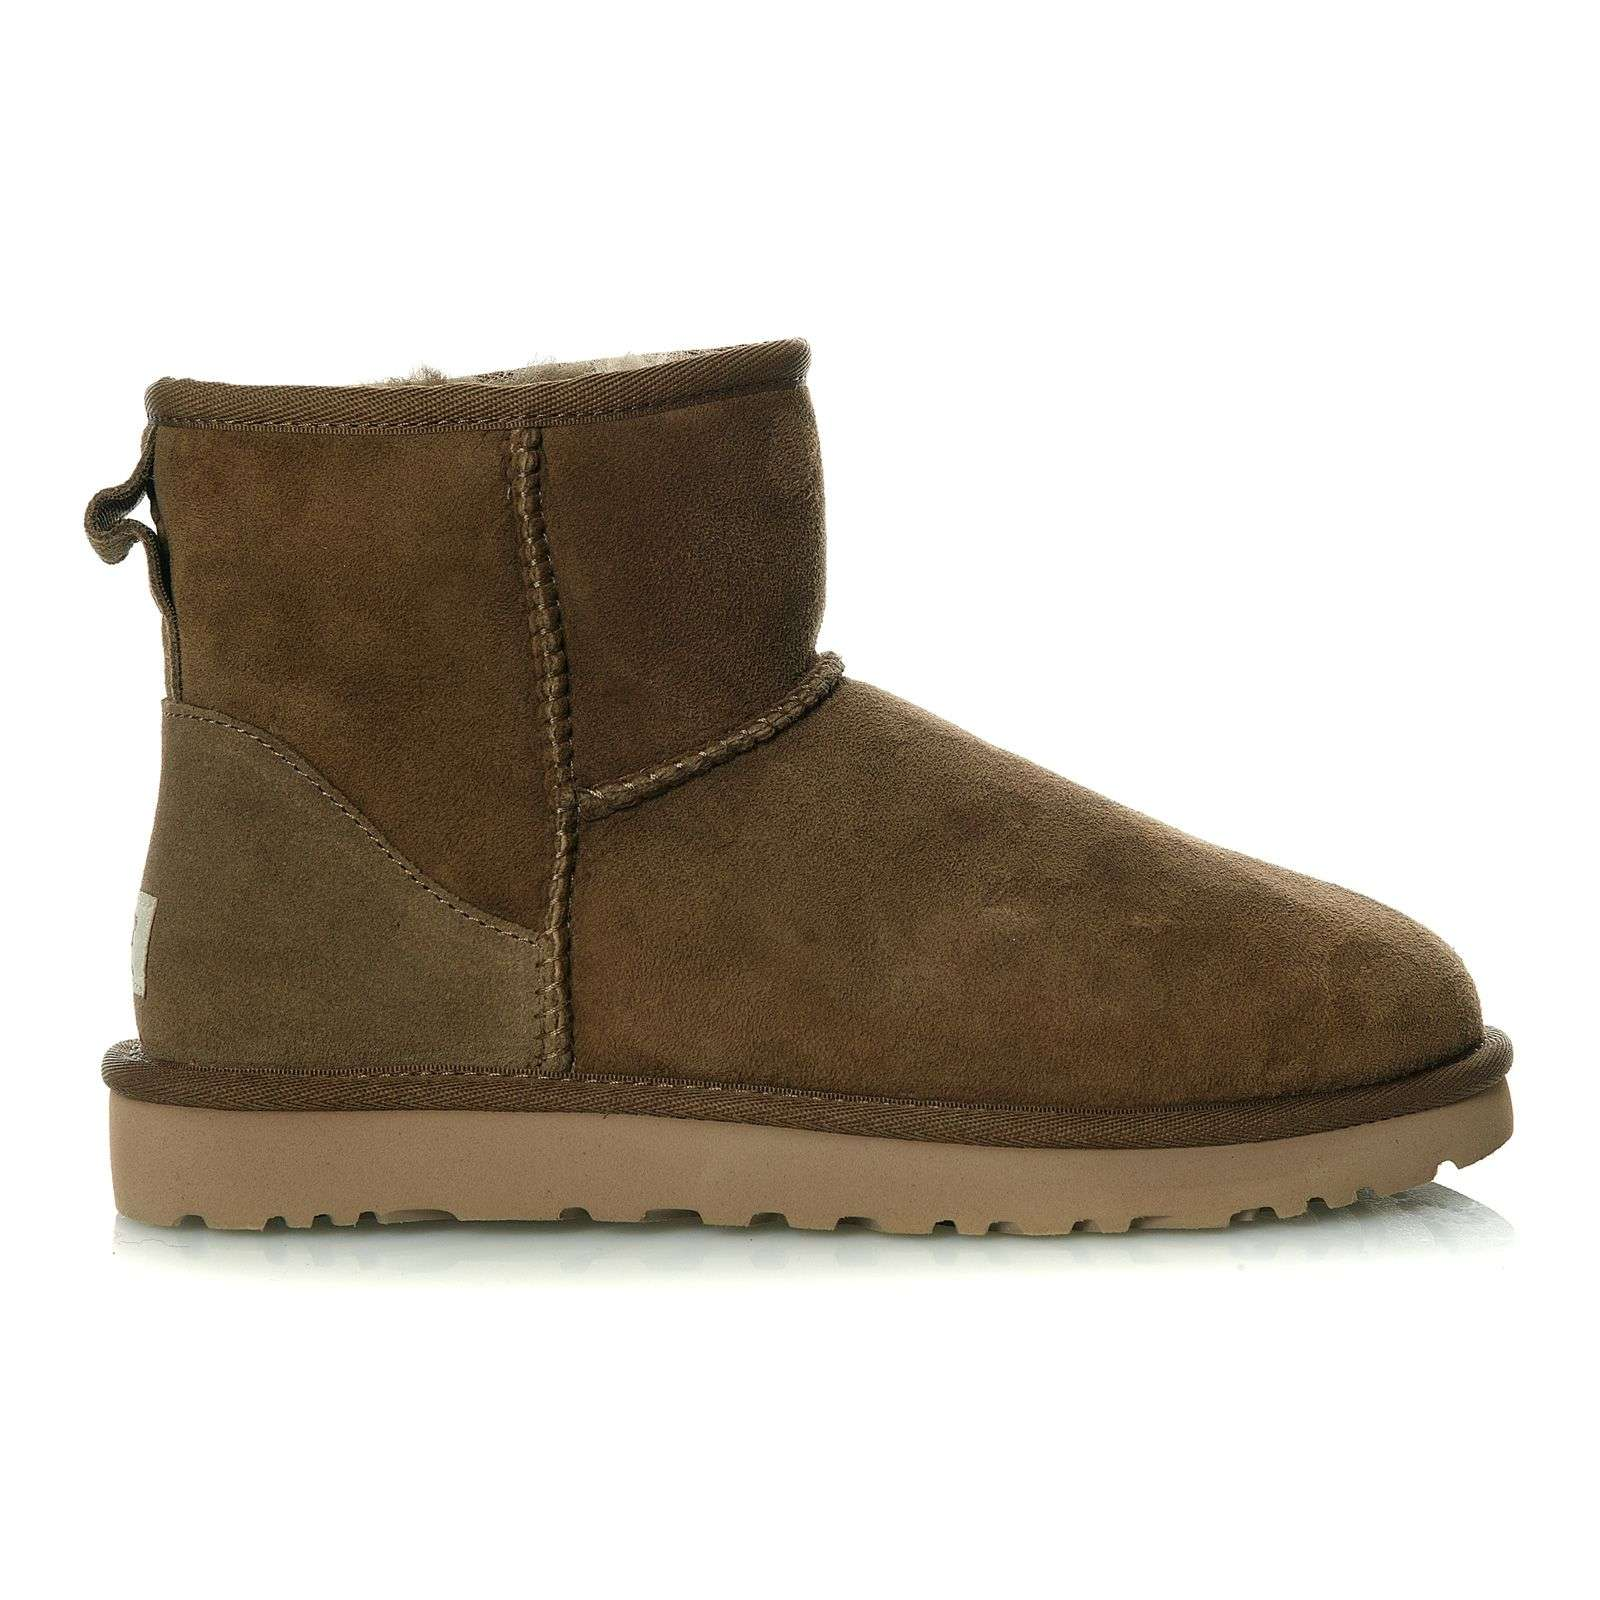 Ugg LuxembourgUgg Classic 1004844 Hommes